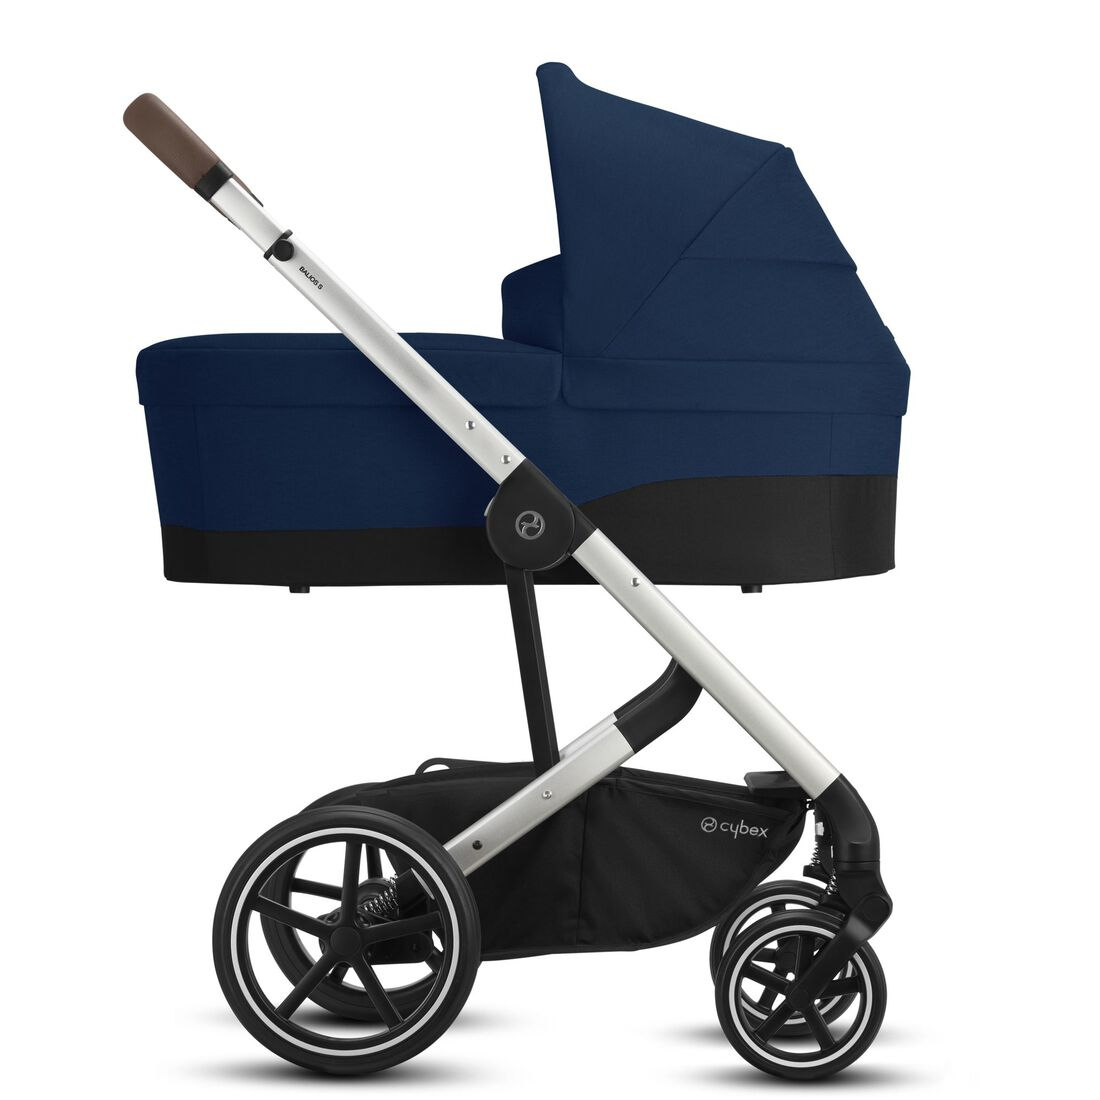 CYBEX Balios S Lux - Navy Blue (Silberner Rahmen) in Navy Blue (Silver Frame) large